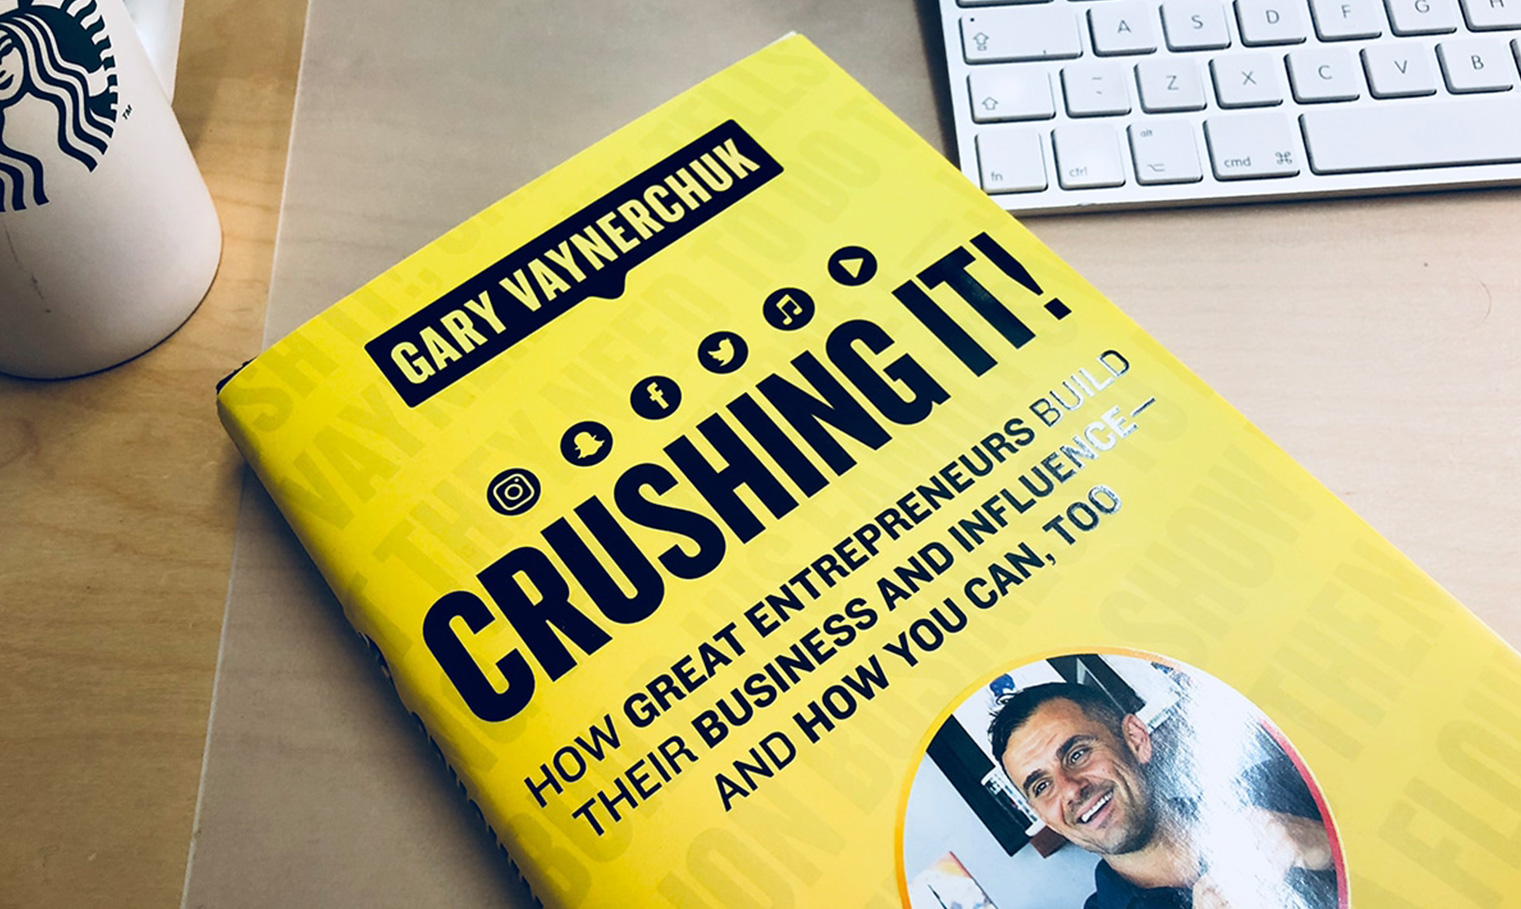 crushing-it-by-gary-vee-deon-graham-entreprenuer-featured